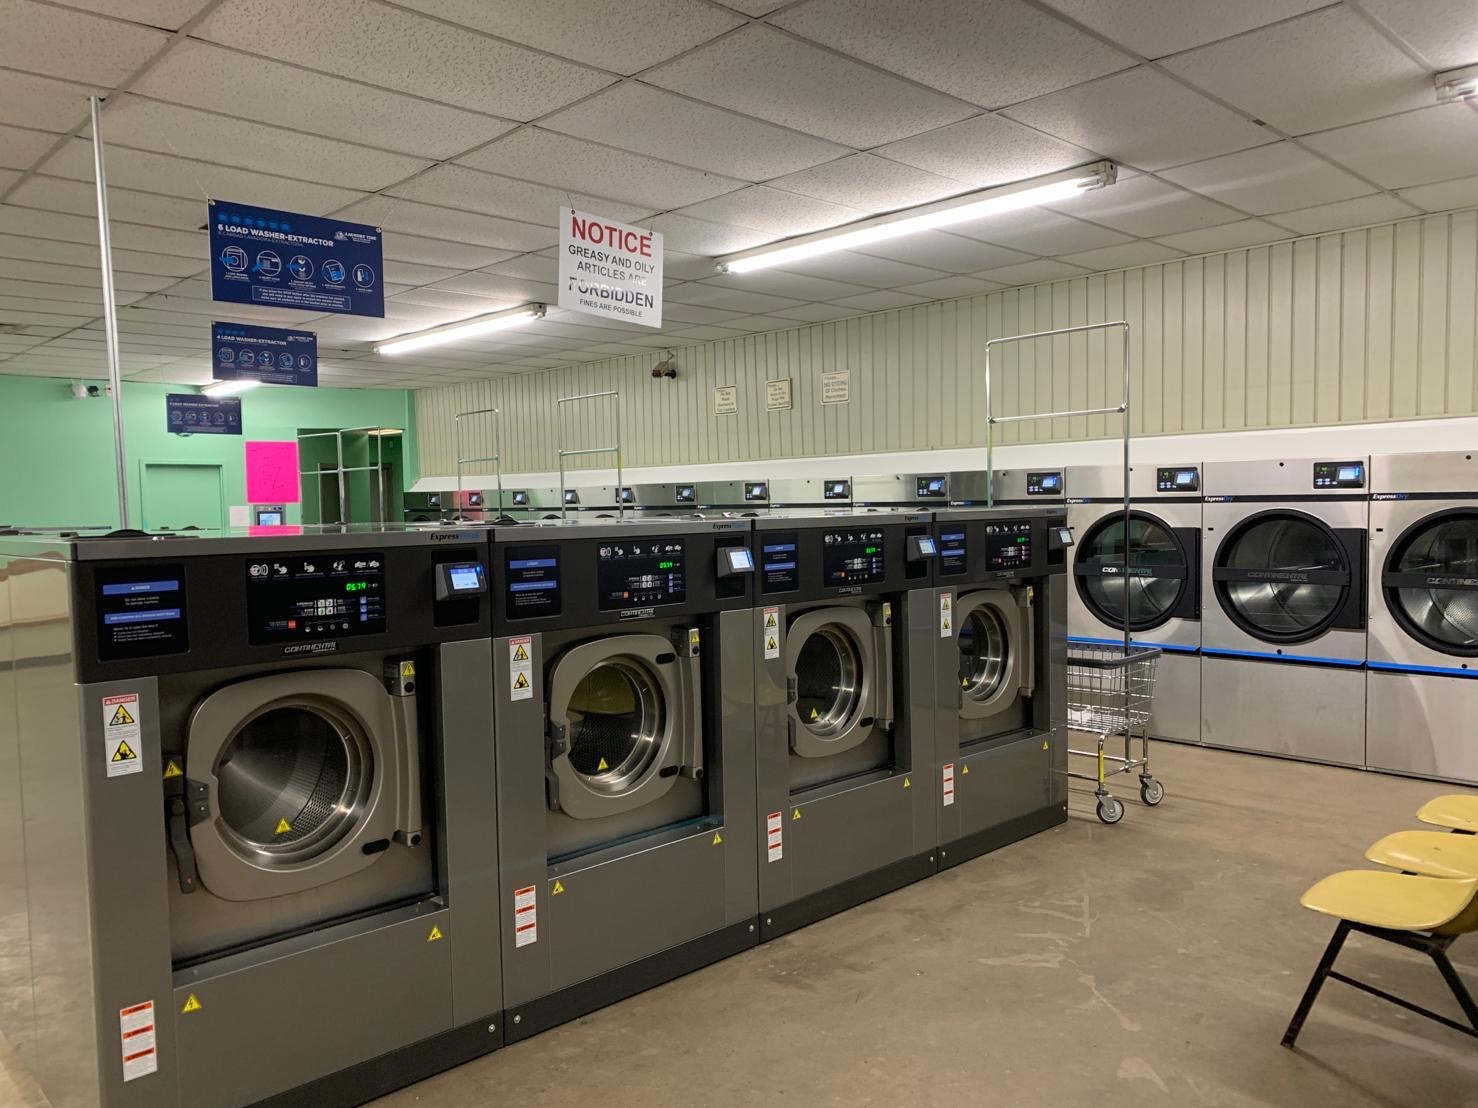 Laundromat in Rittman Ohio with card operated washers and dryers